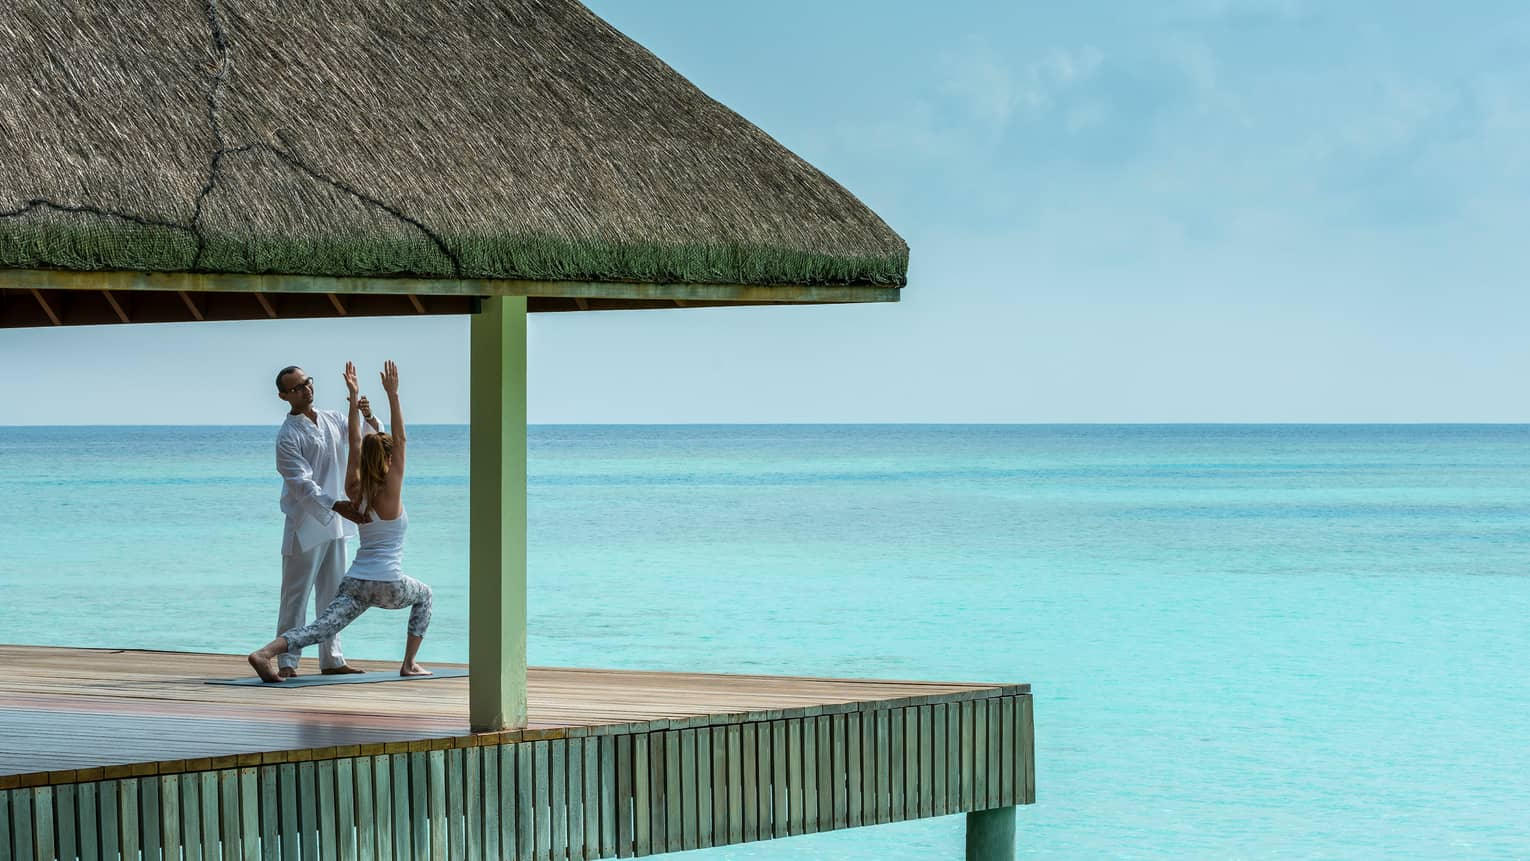 Yogi helps woman into yoga pose on thatched roof pavillion over blue ocean